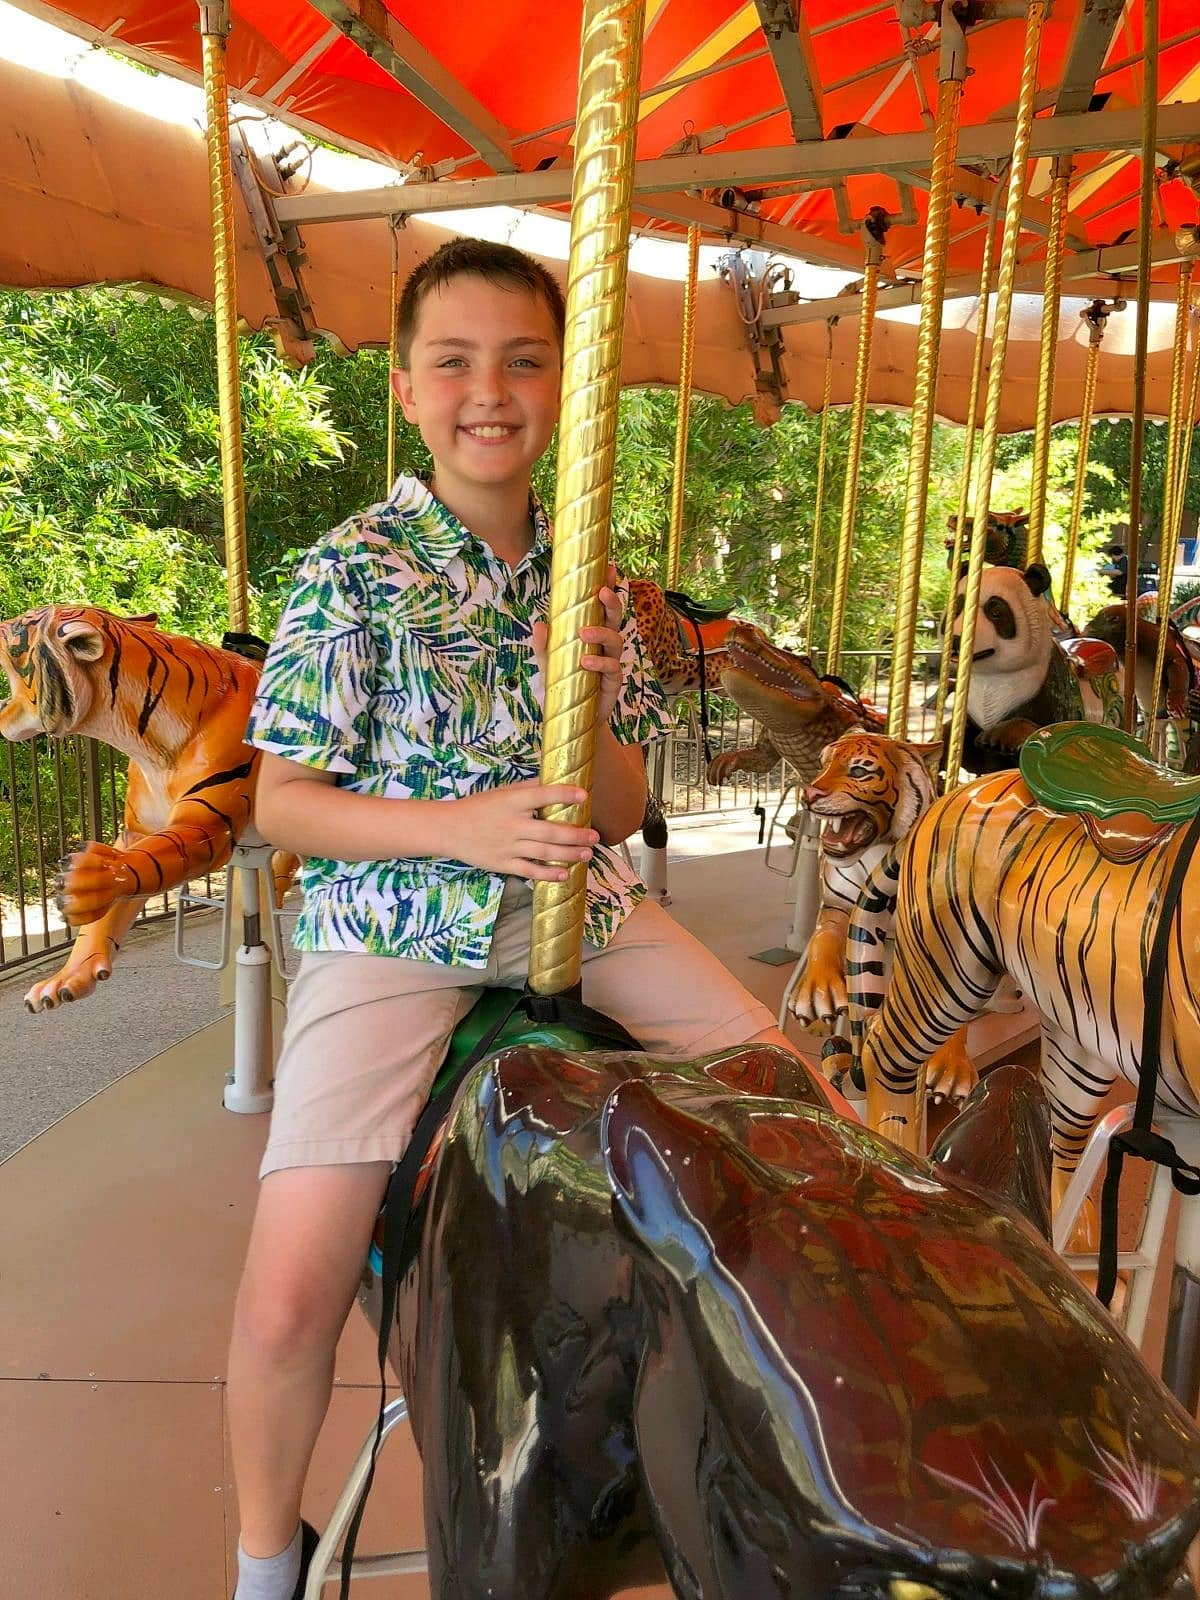 Carousel at the Phoenix Zoo with kids